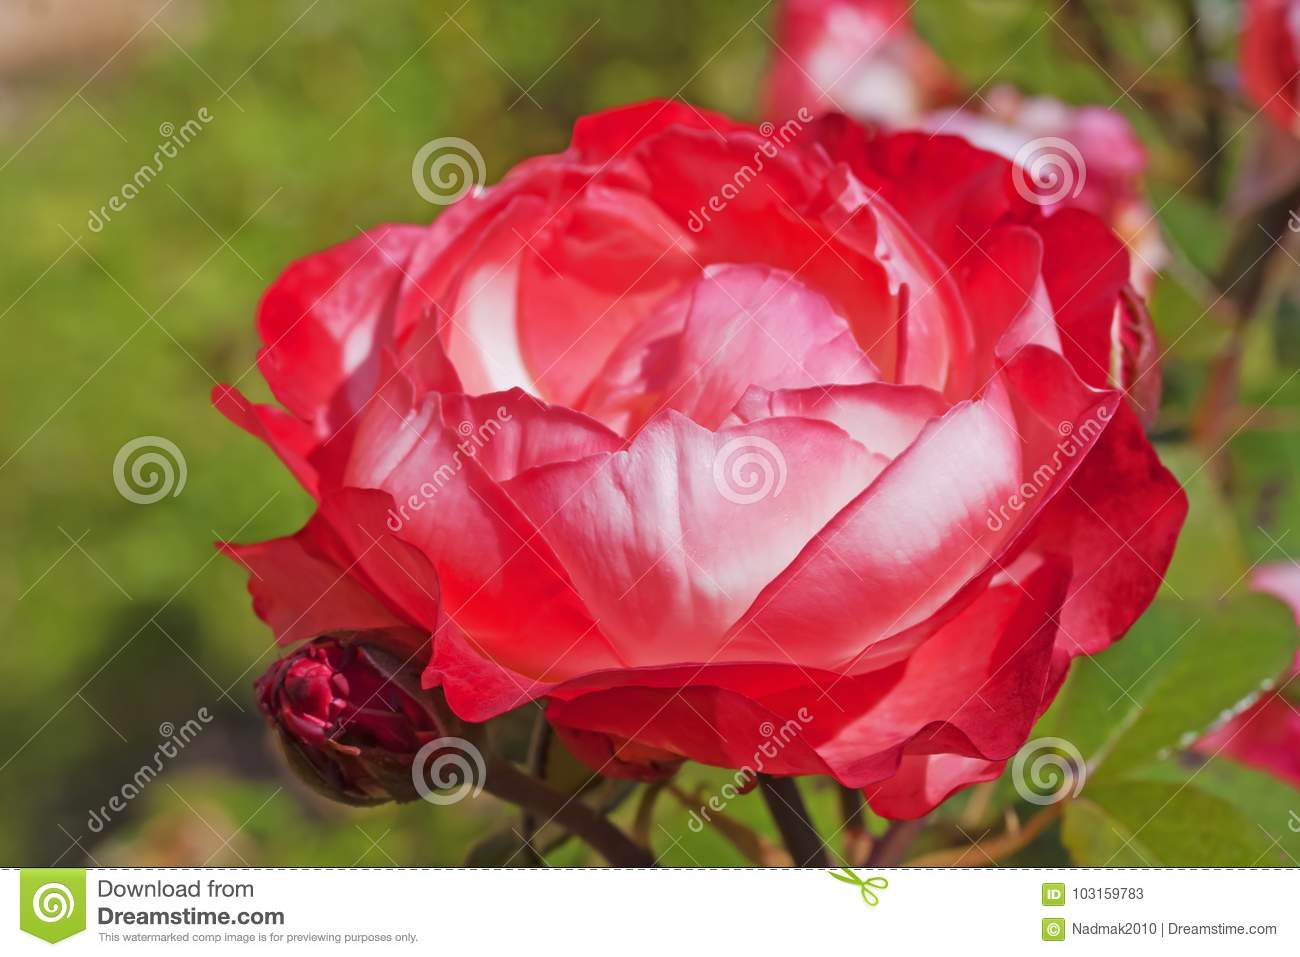 Rose `Nostalgie` With Red To White Petals In Garden Close-up Stock ...